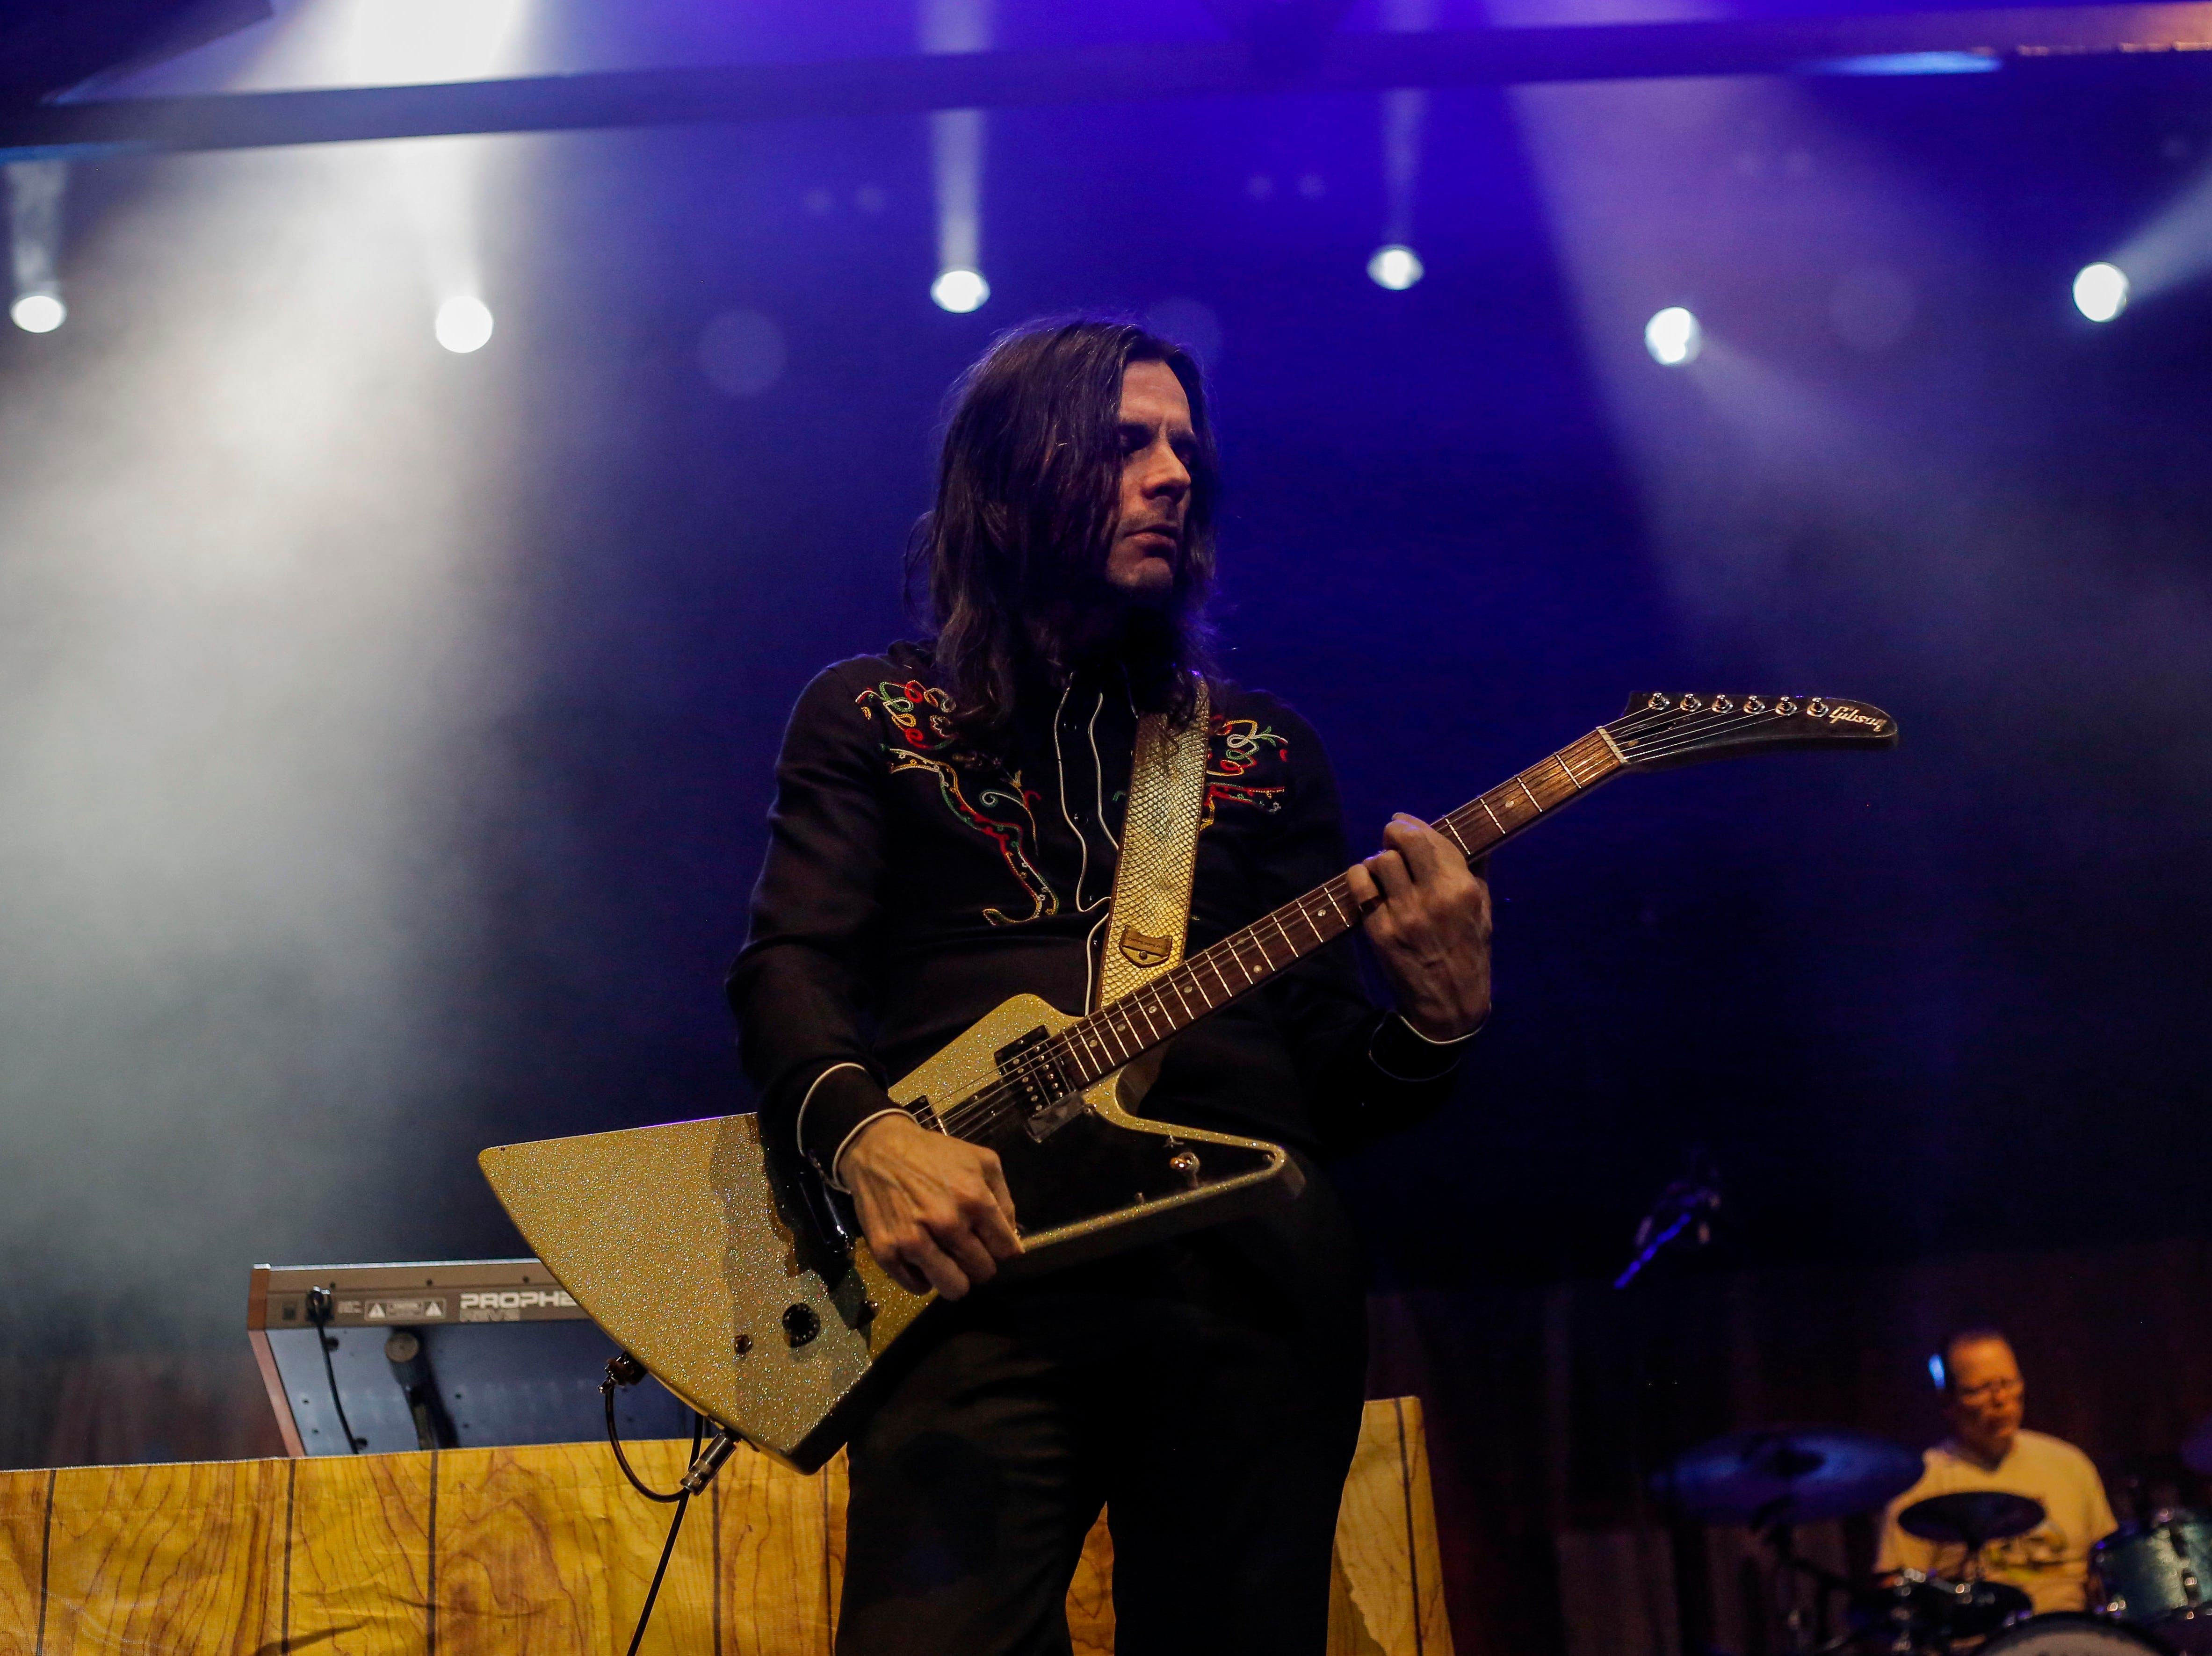 Brian Bell, guitarist in Weezer, performs during the first show of the Weezer x Pixies 2019 tour at the KFC Yum! Center in downtown Louisville, Ky. on Friday, March 8, 2019.